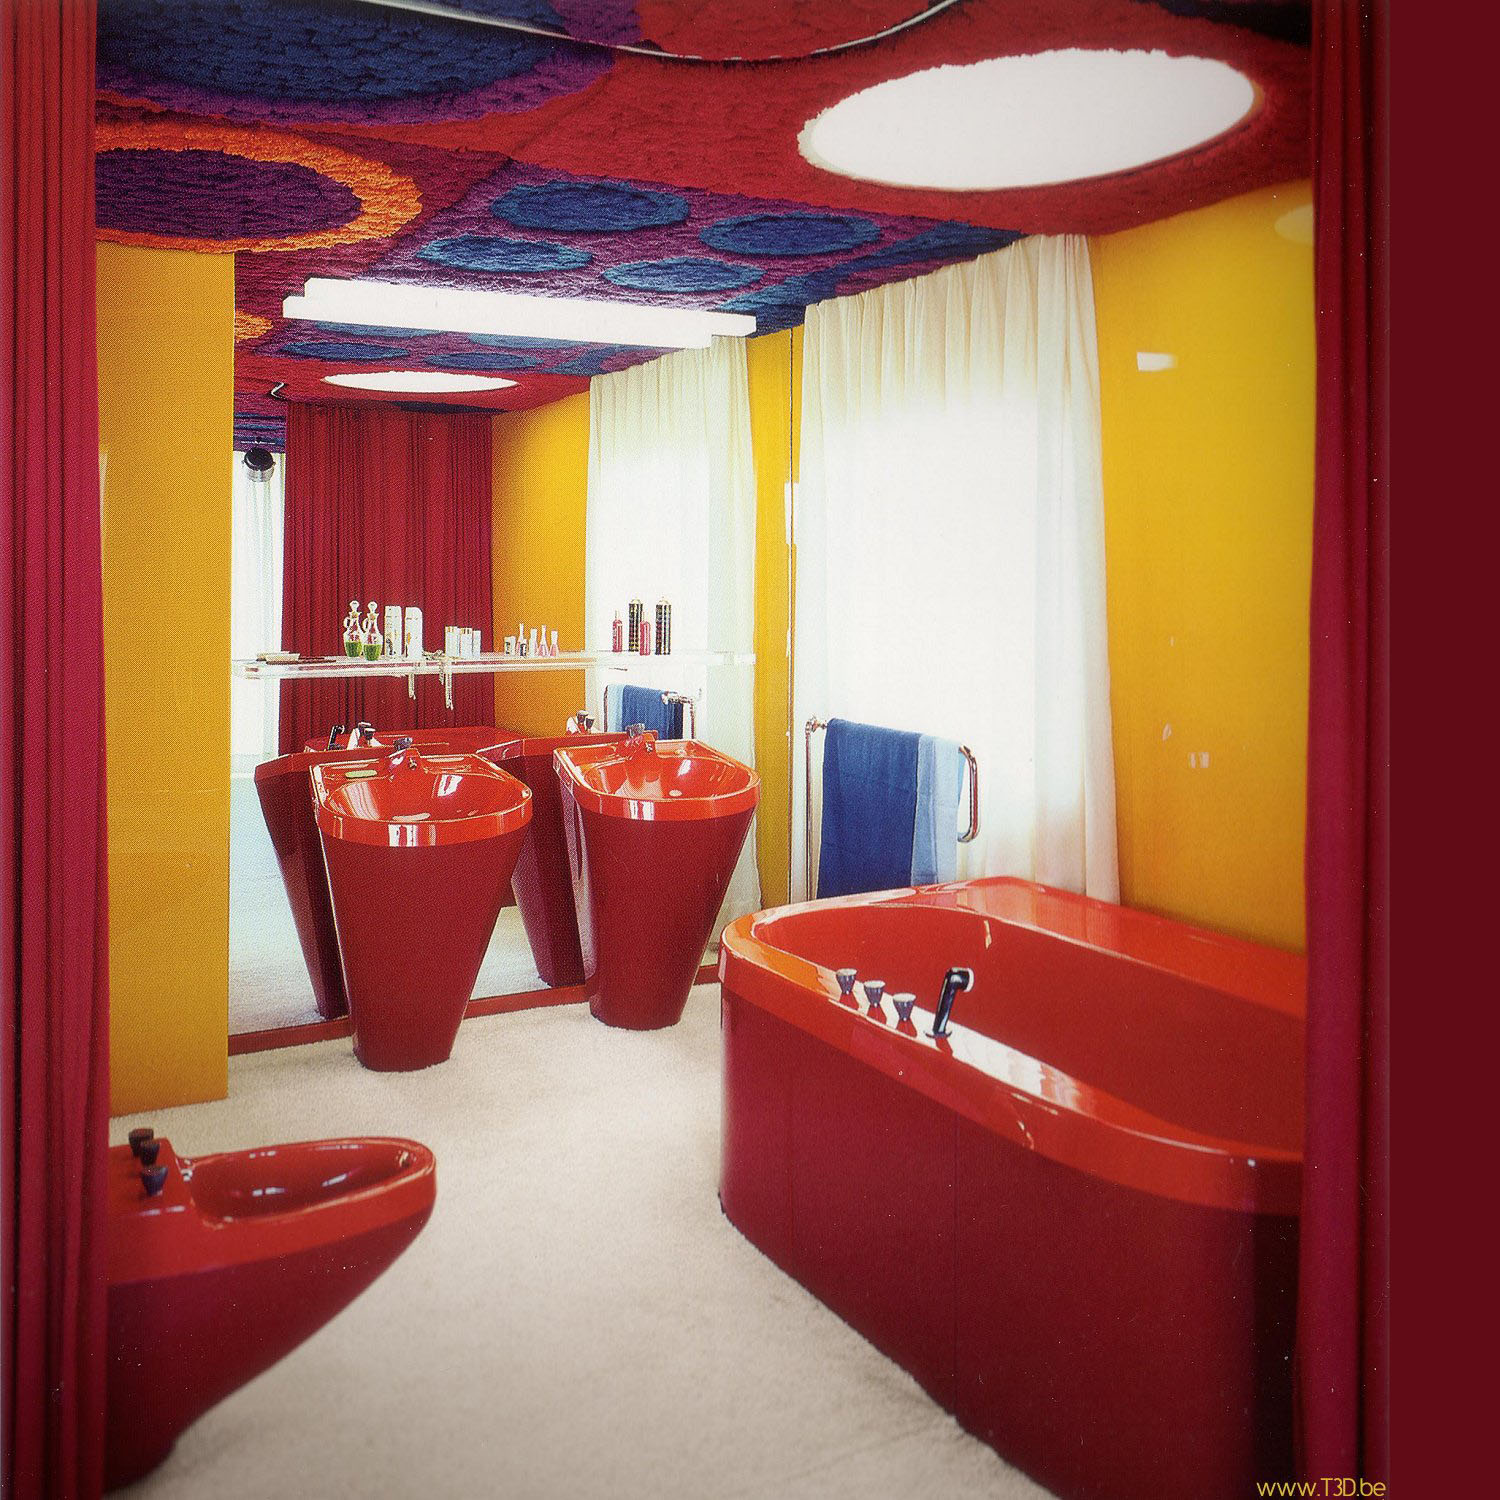 Red fiberglass bathroom manufactured by Rohm and Haas.